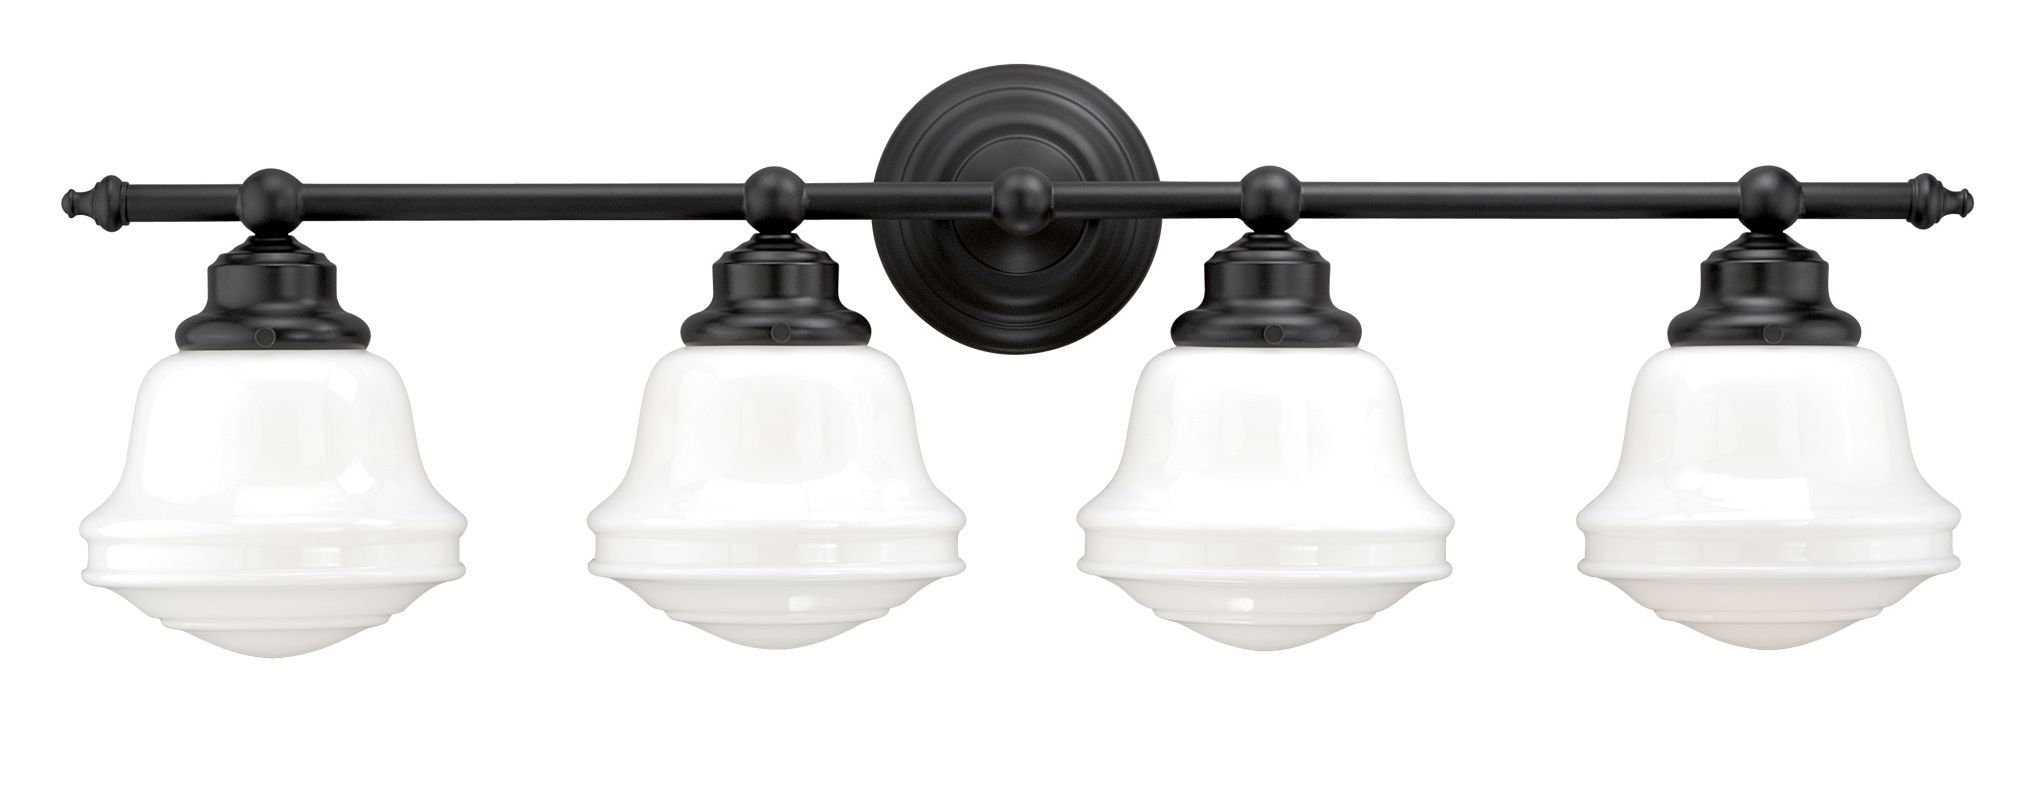 Photo of Vaxcel Lighting W0172 Oil Rubbed Bronze Huntley 4 Light Vanity Light